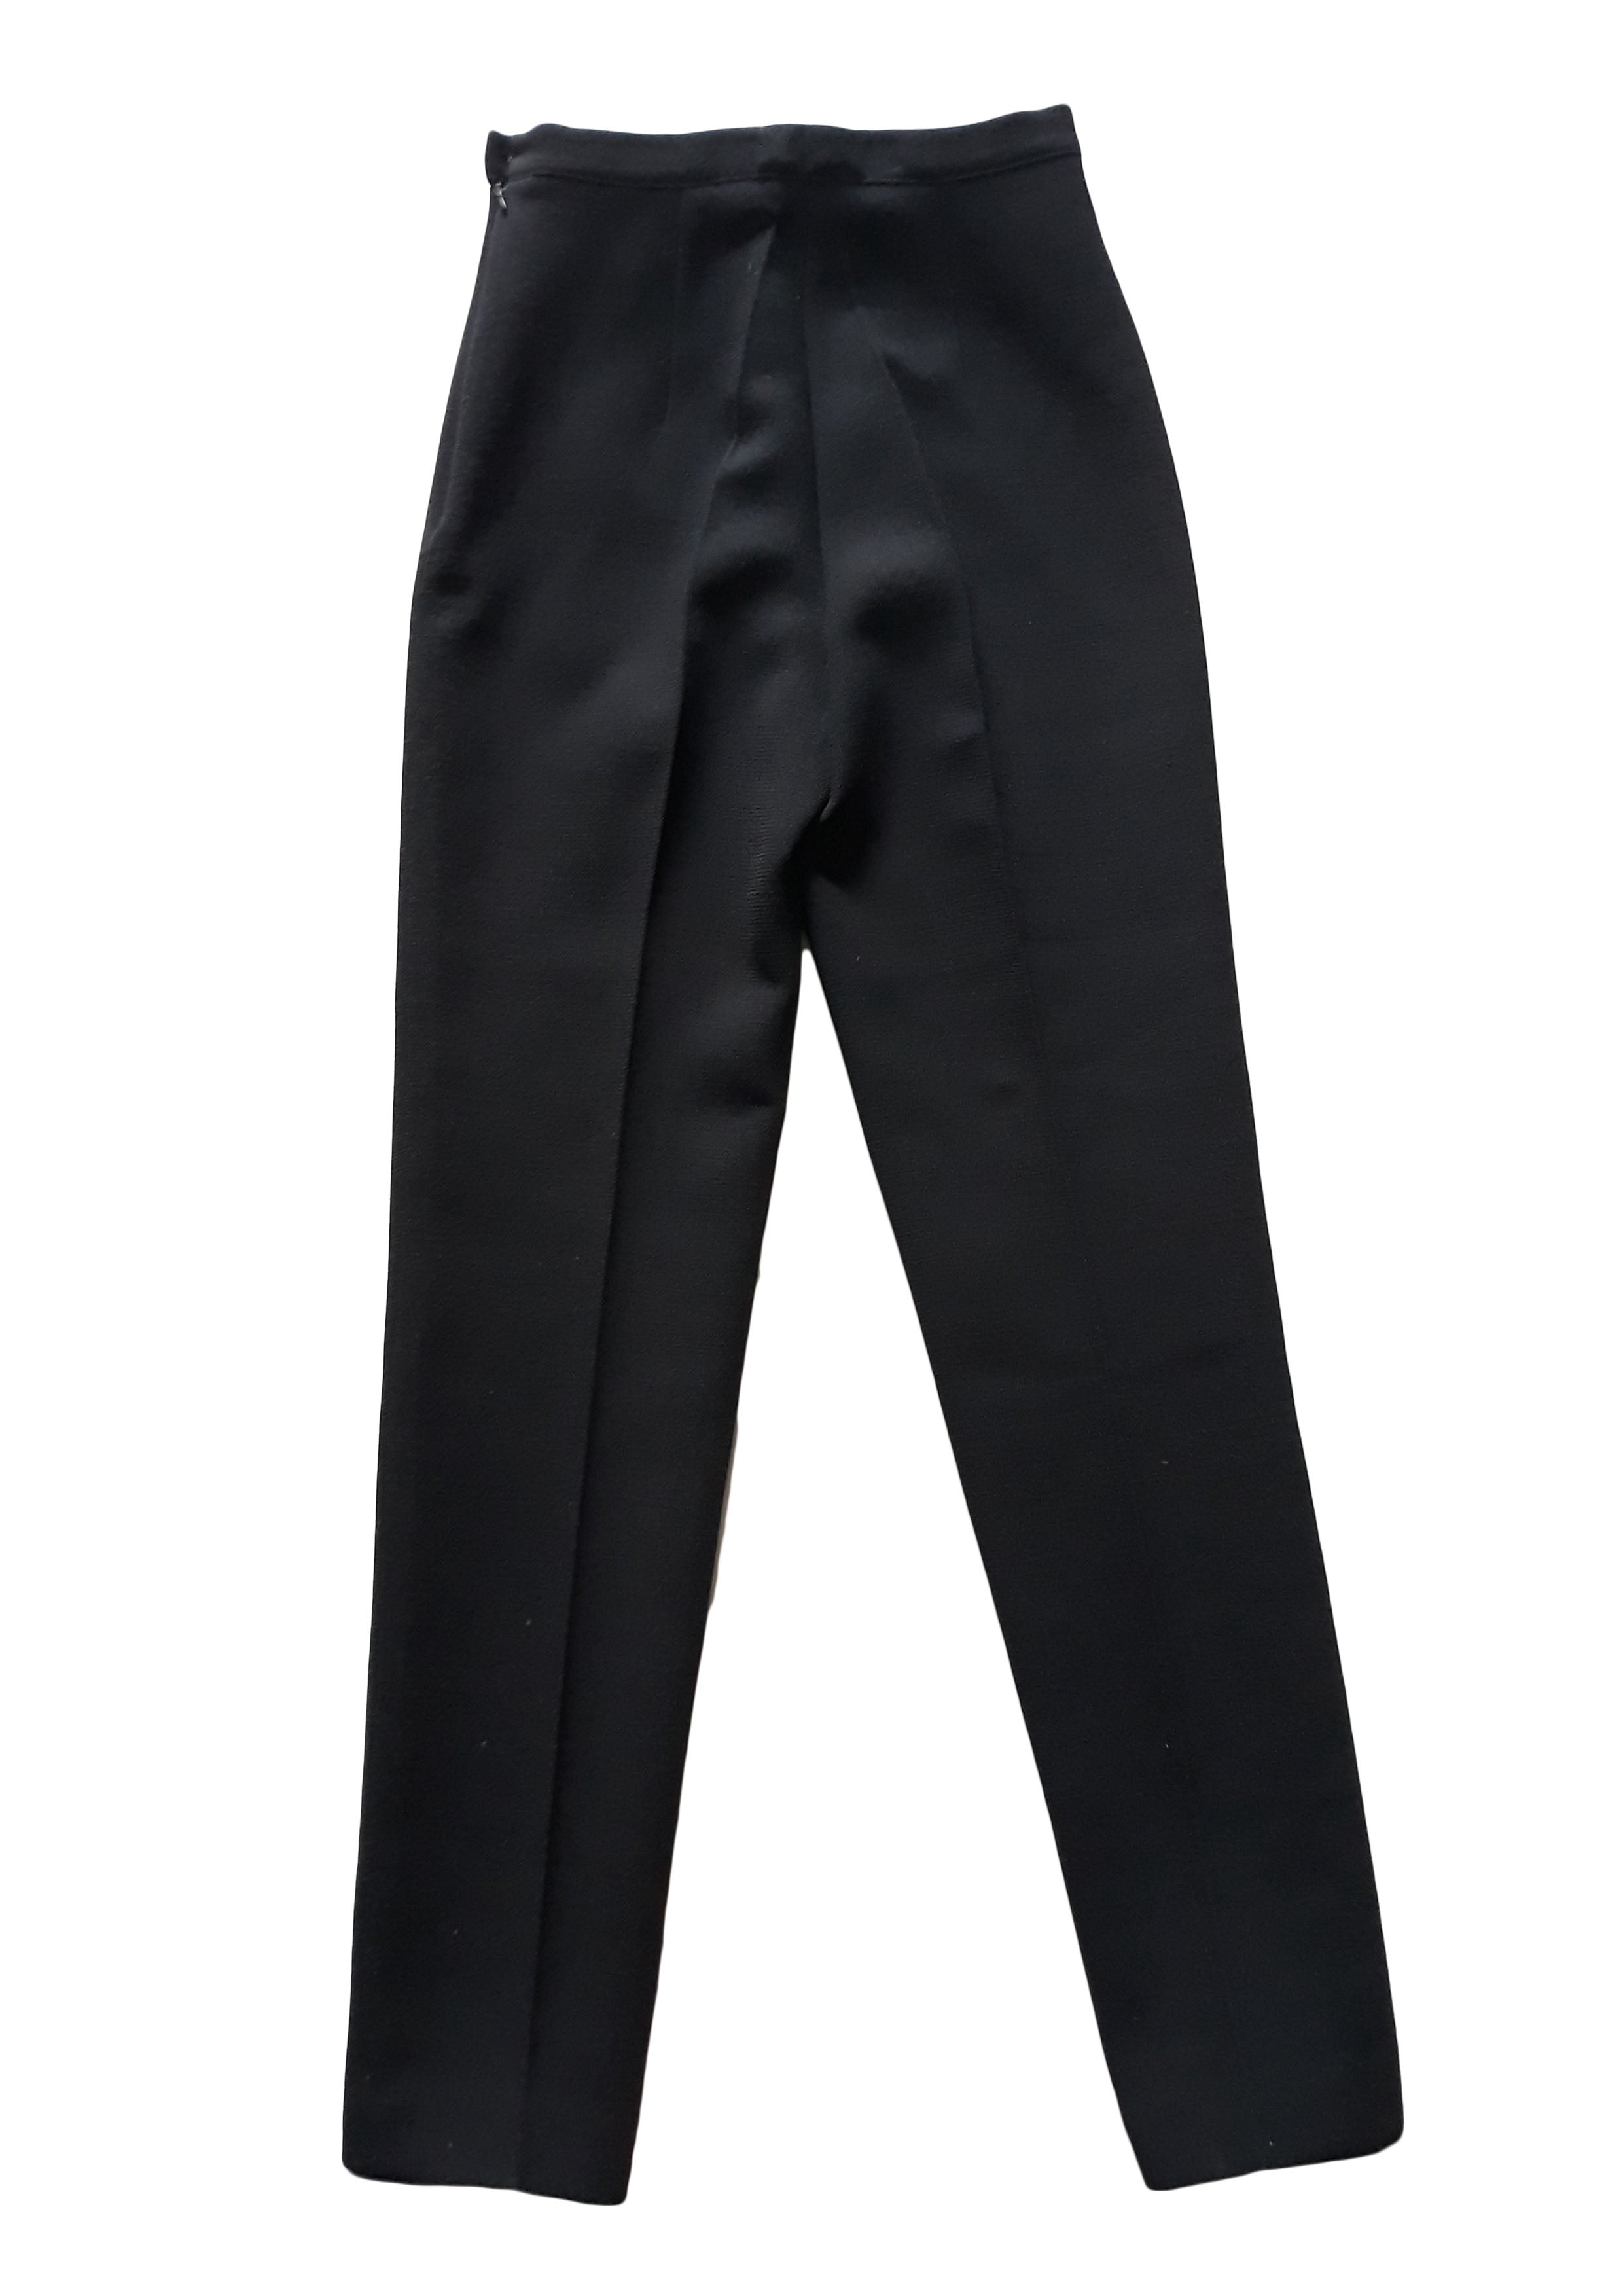 Georges Rech Trousers 100% Wool in Black Size 38 (EU)